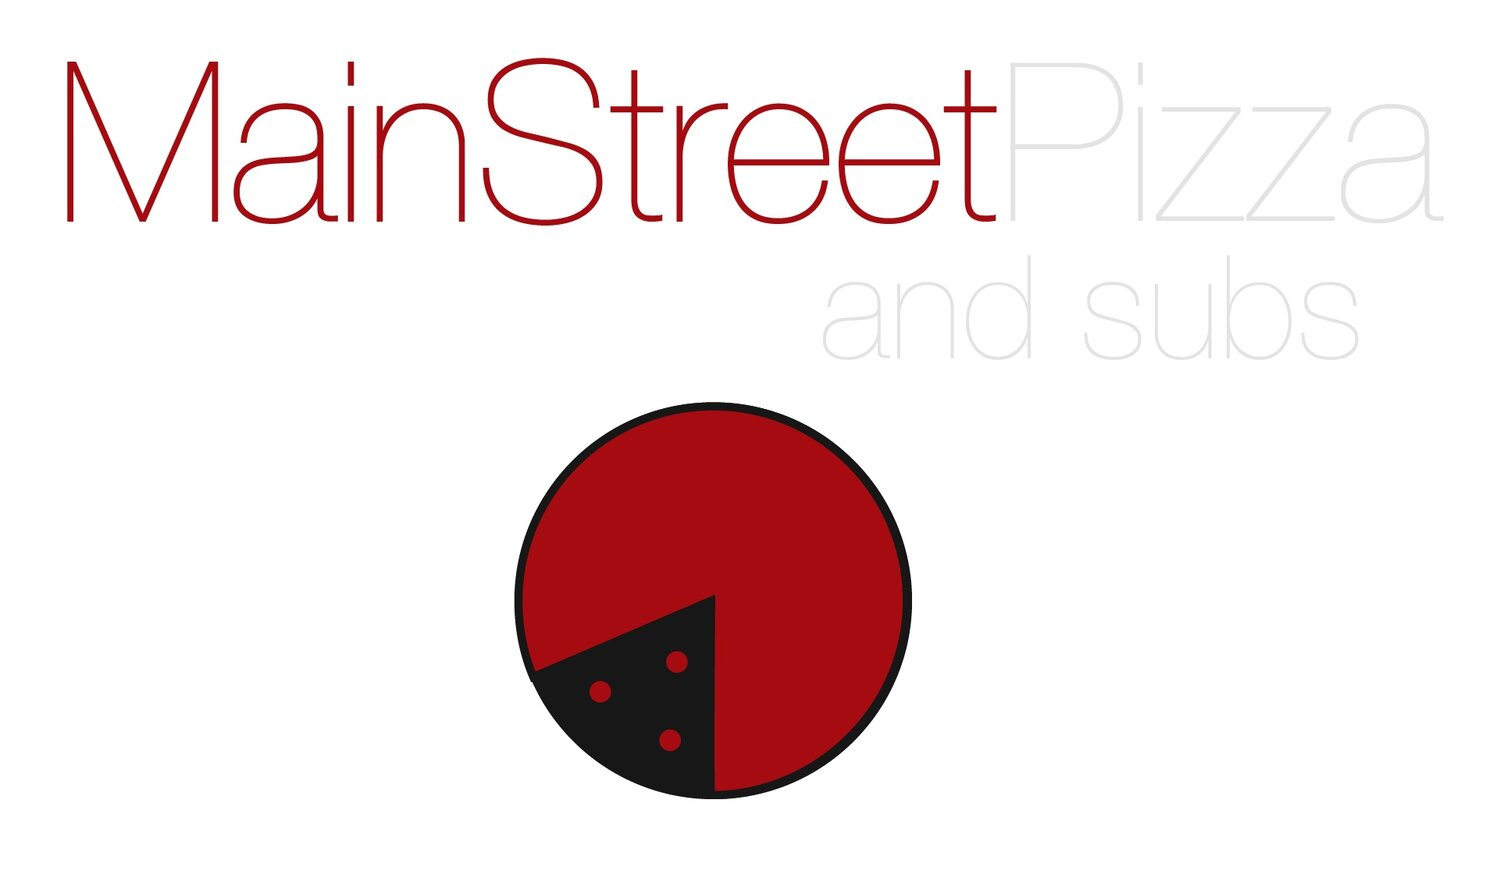 Main Street Pizza and Subs